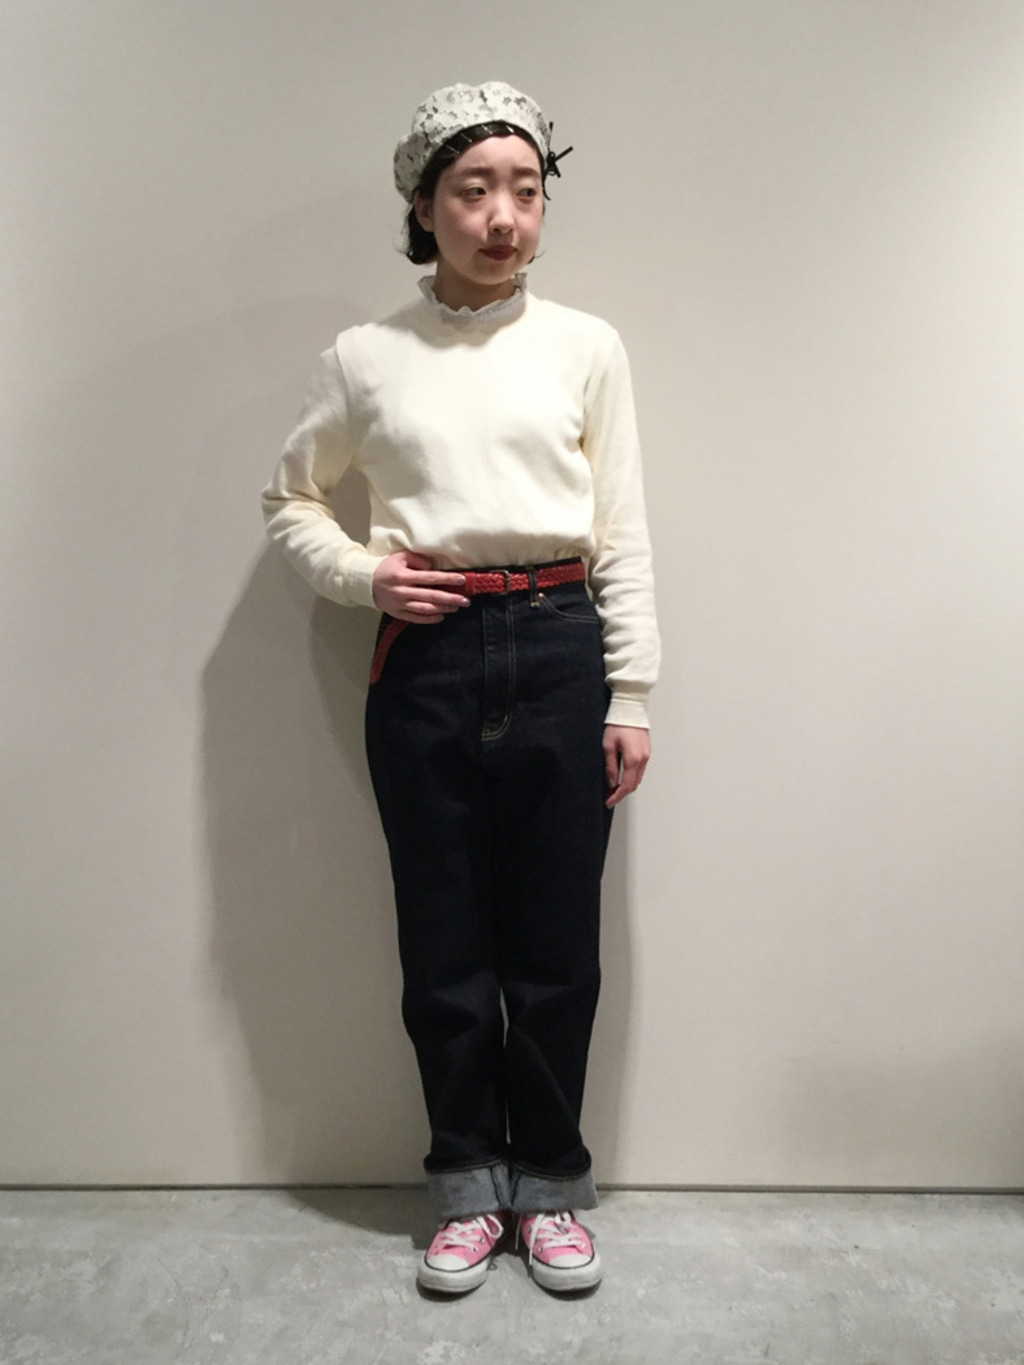 AMB SHOP CHILD WOMAN CHILD WOMAN , PAR ICI ルミネ横浜 身長:158cm 2020.04.10